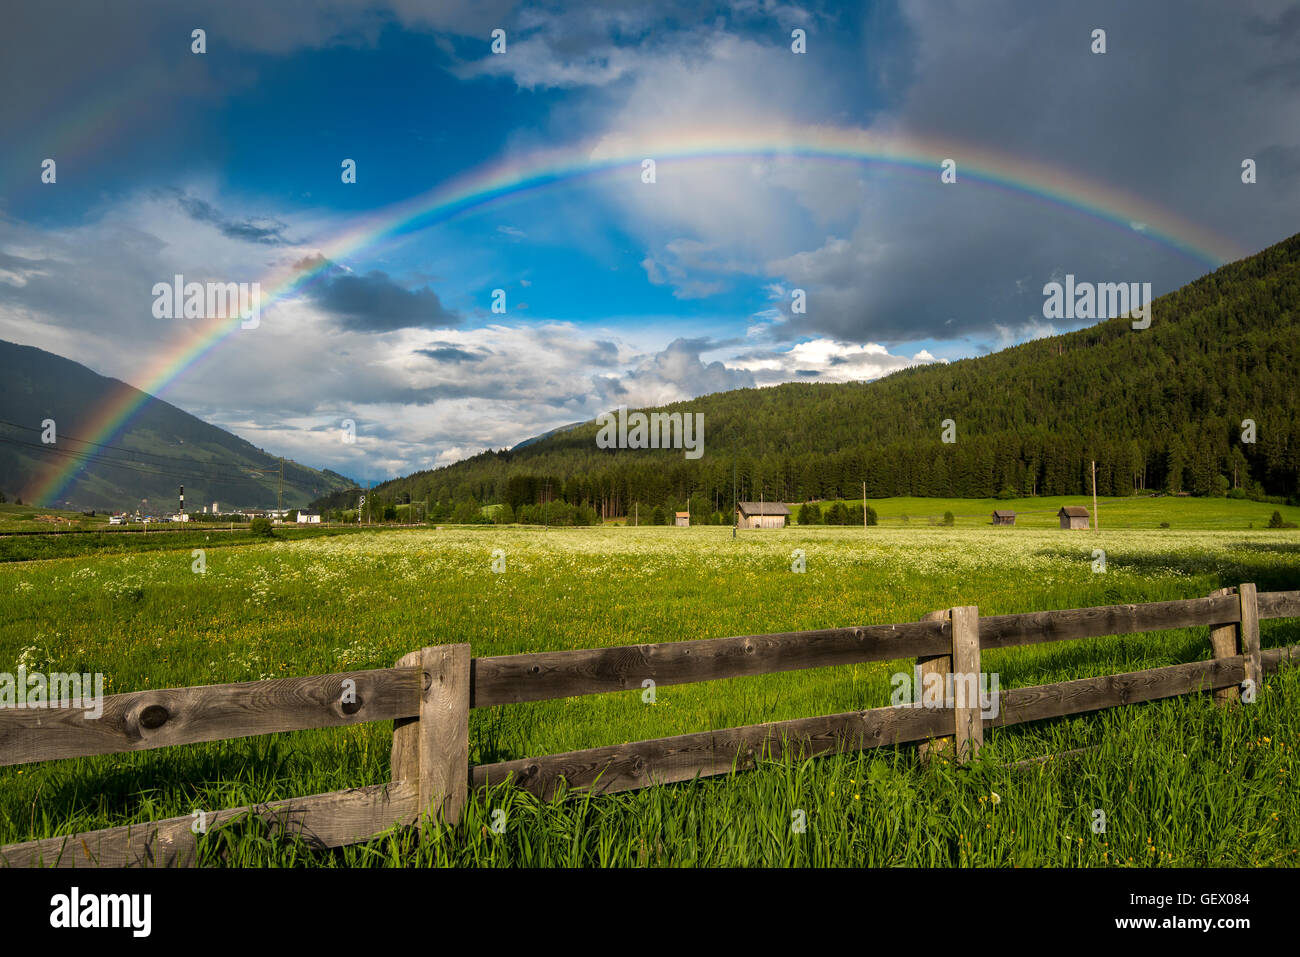 Mountain landscape with rainbow in Val Pusteria or Pustertal valley, South Tyrol, Italy - Stock Image